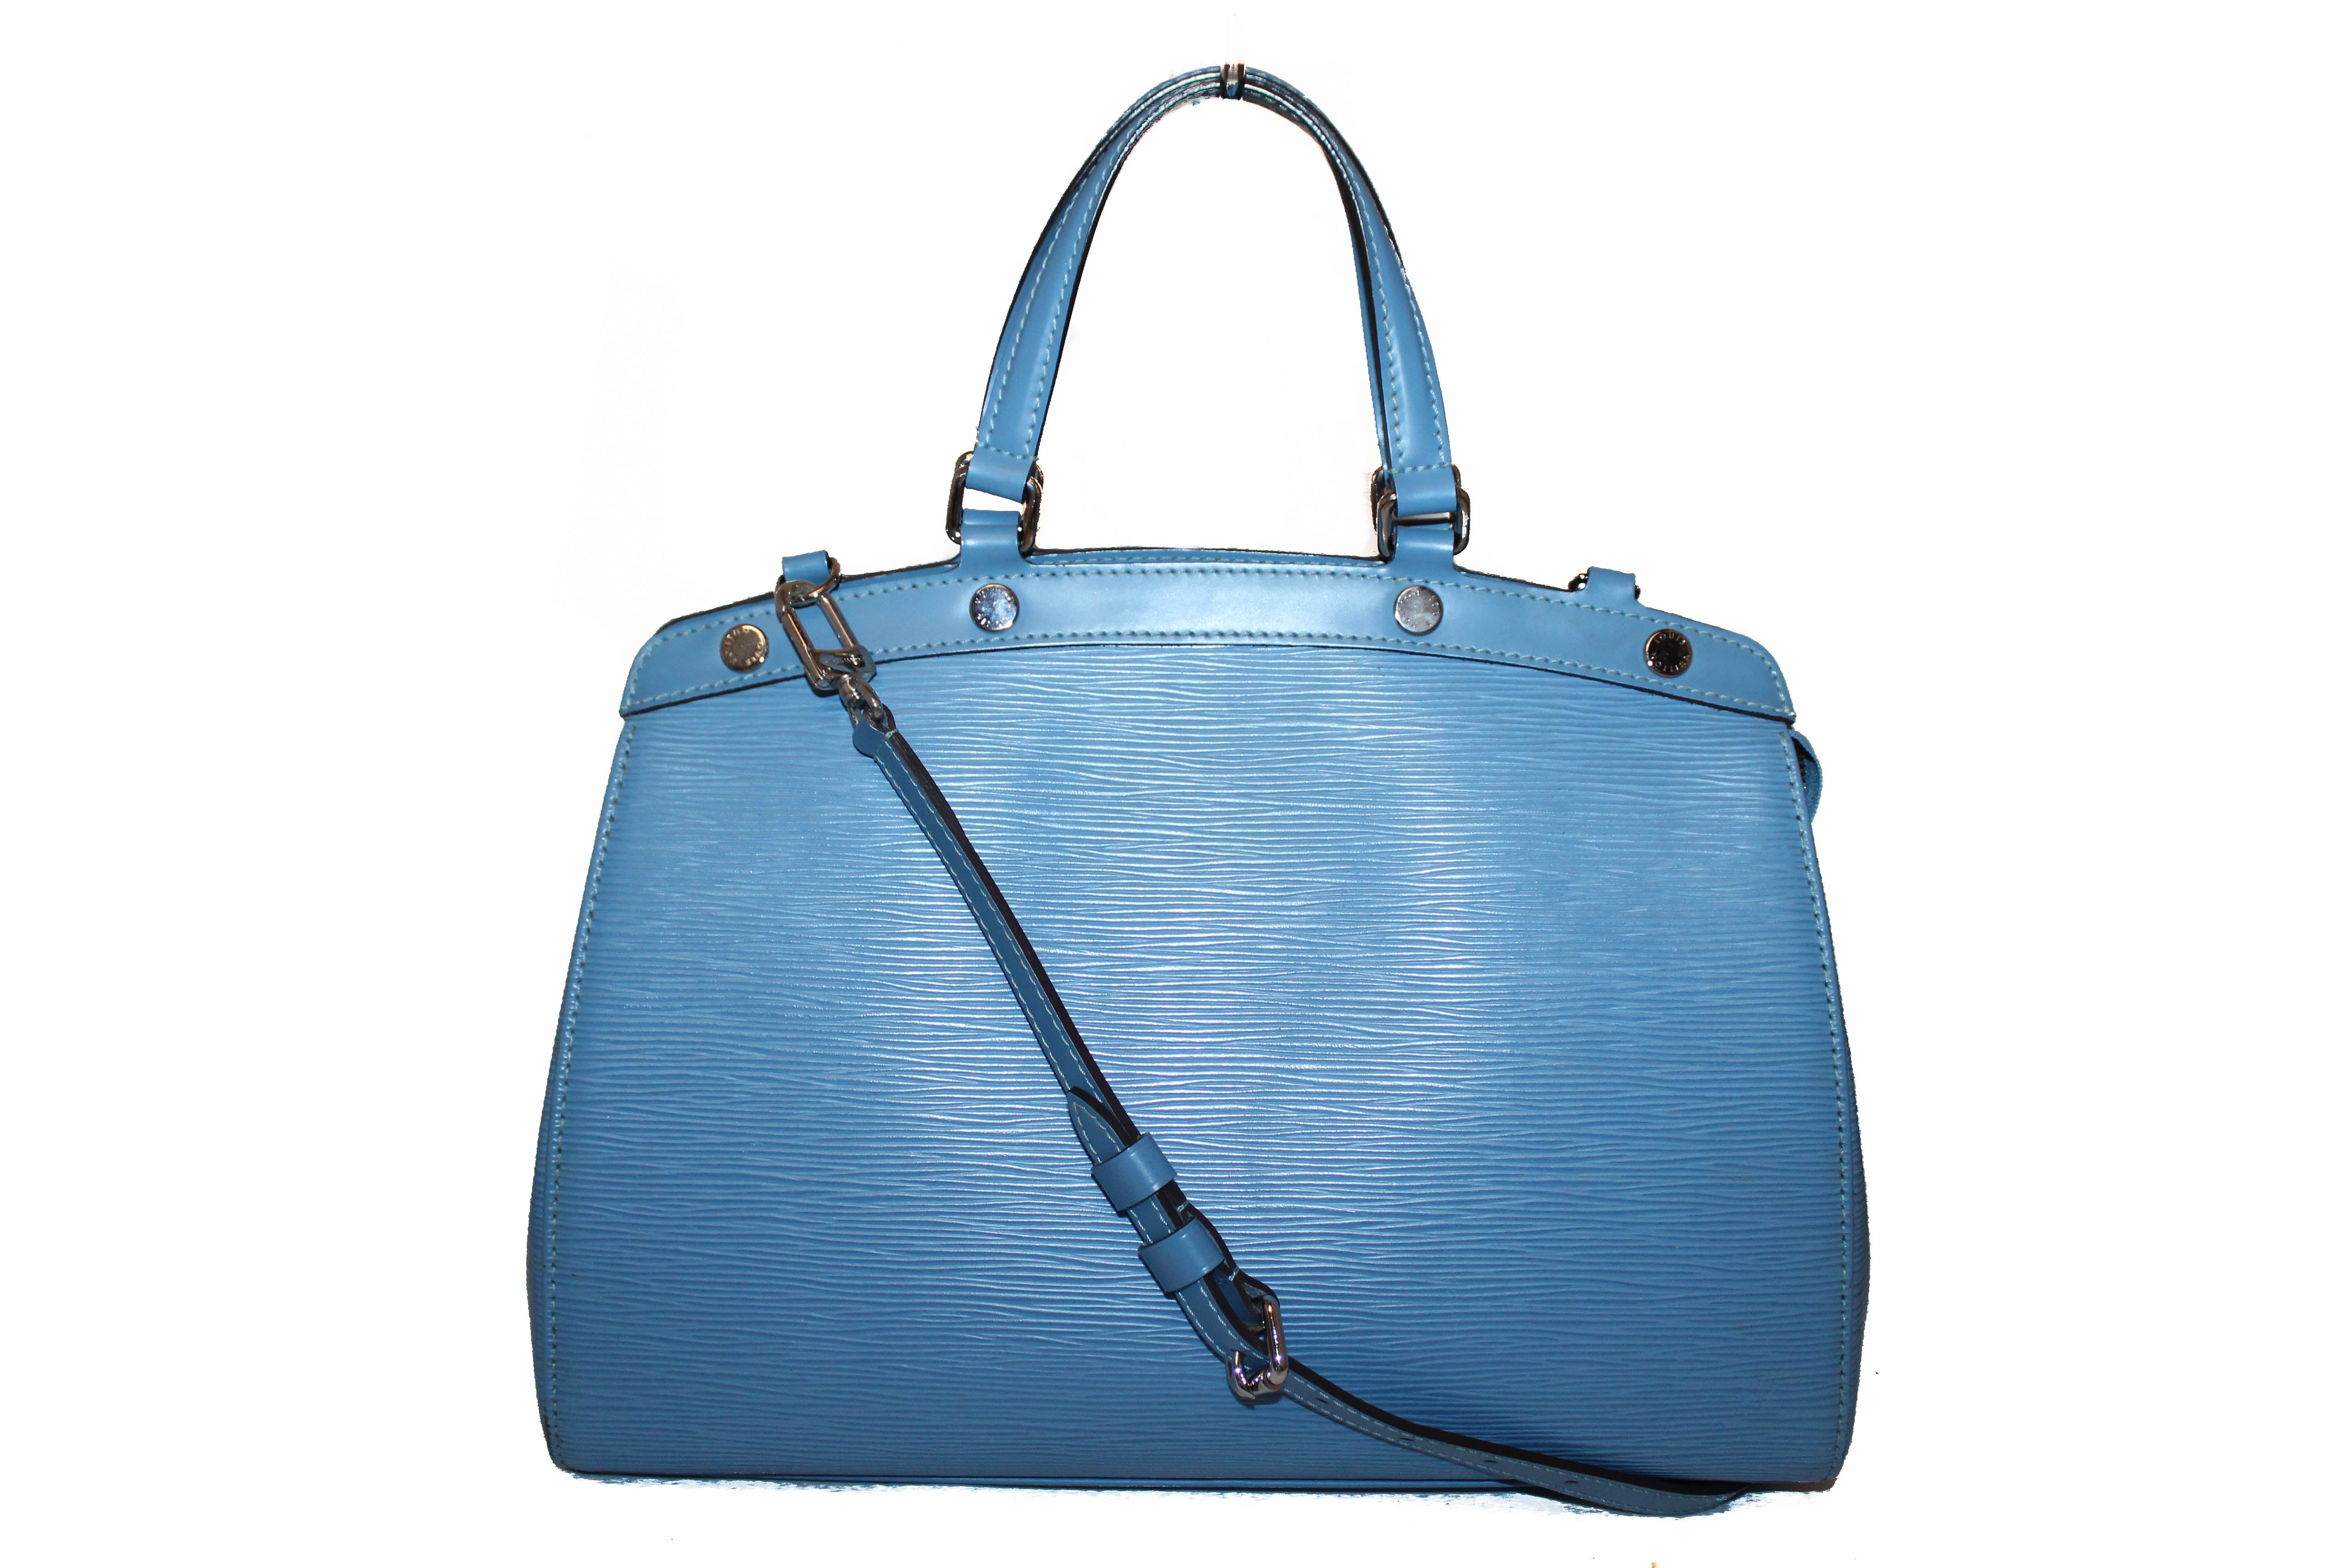 Authentic Louis Vuitton Blue Epi Leather Brea MM Tote Shoulder Bag